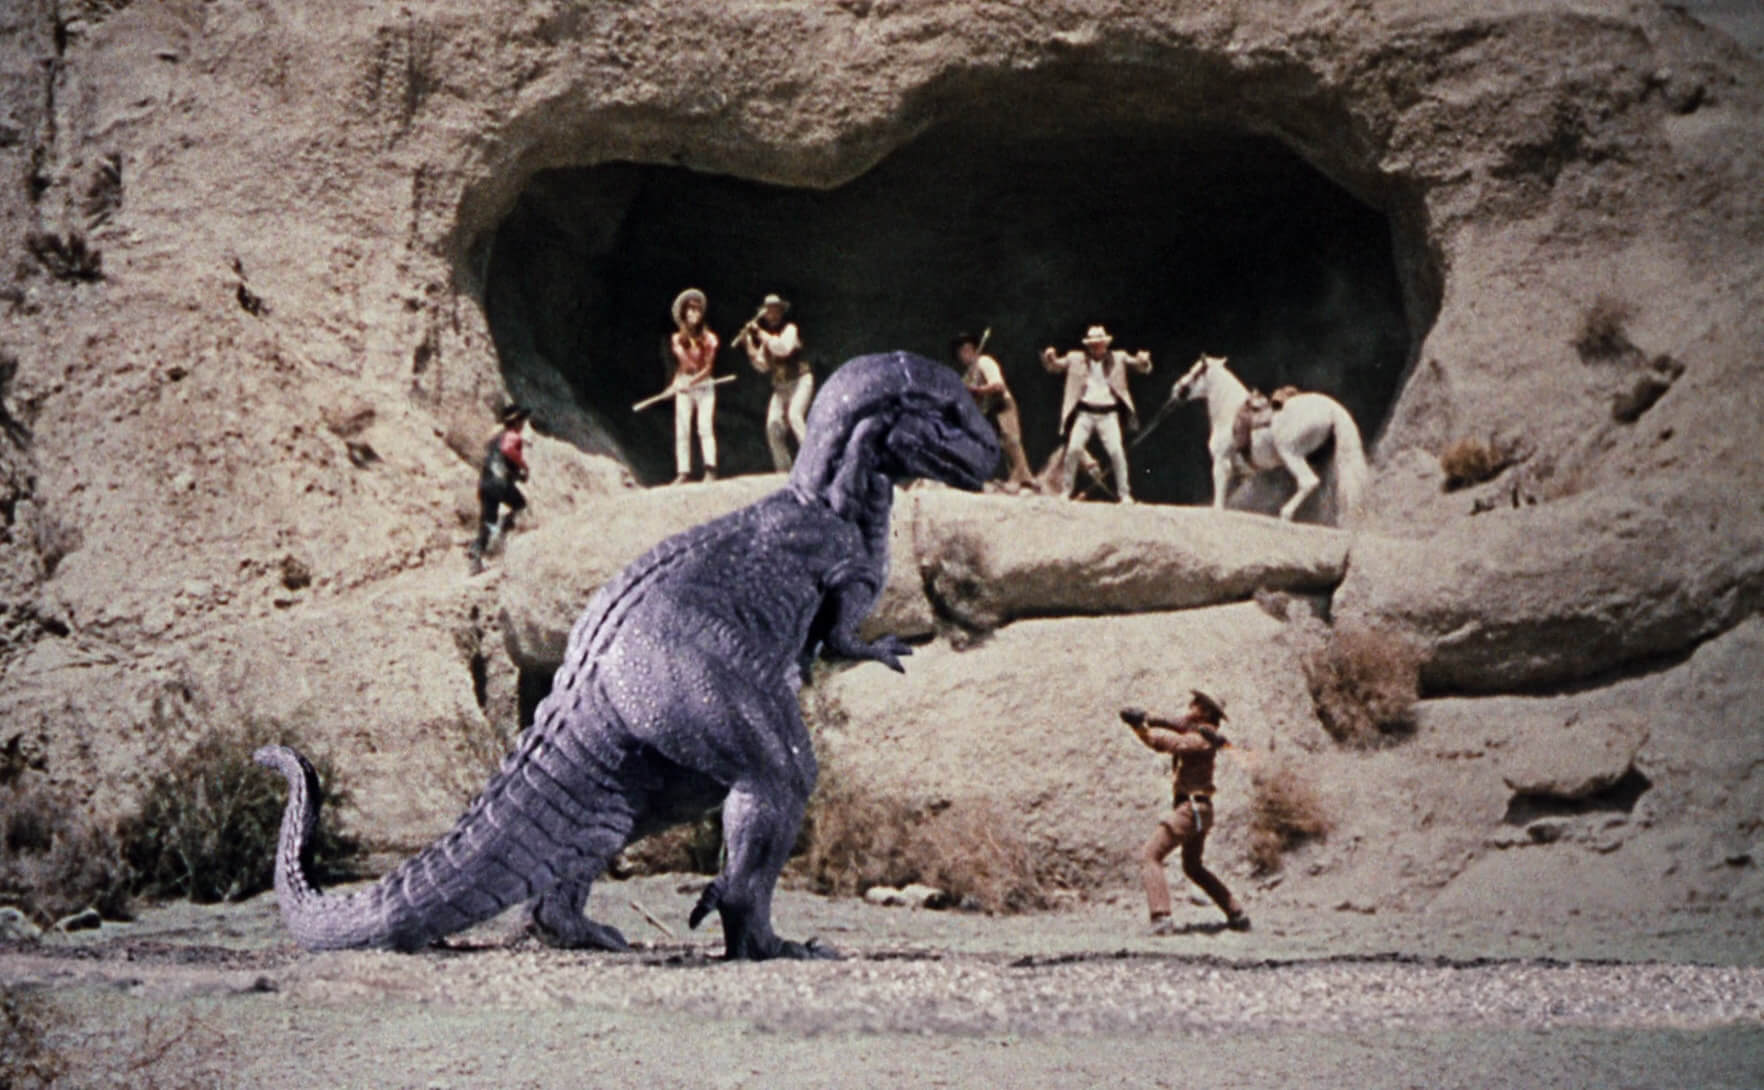 Cowboys vs dinosaurs in The Valley of Gwangi (1969)